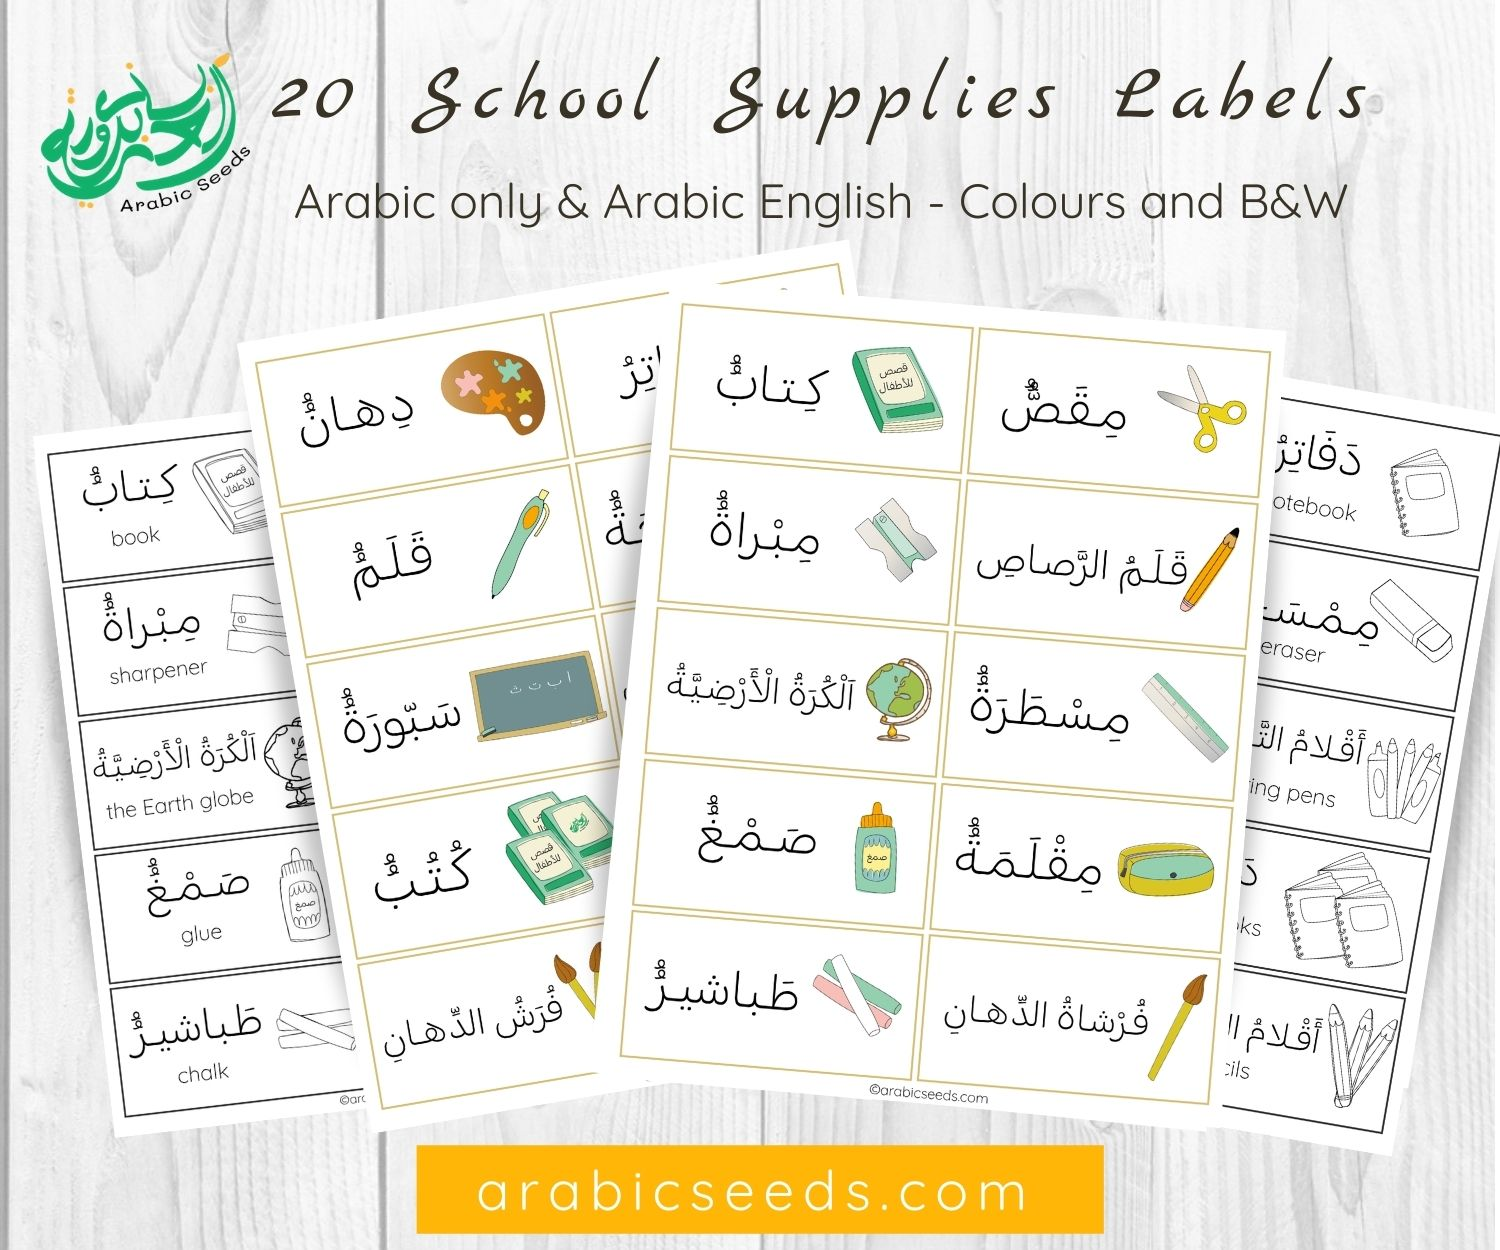 Arabic Seeds School Supplies printable labels - Arabic only & Arabic English